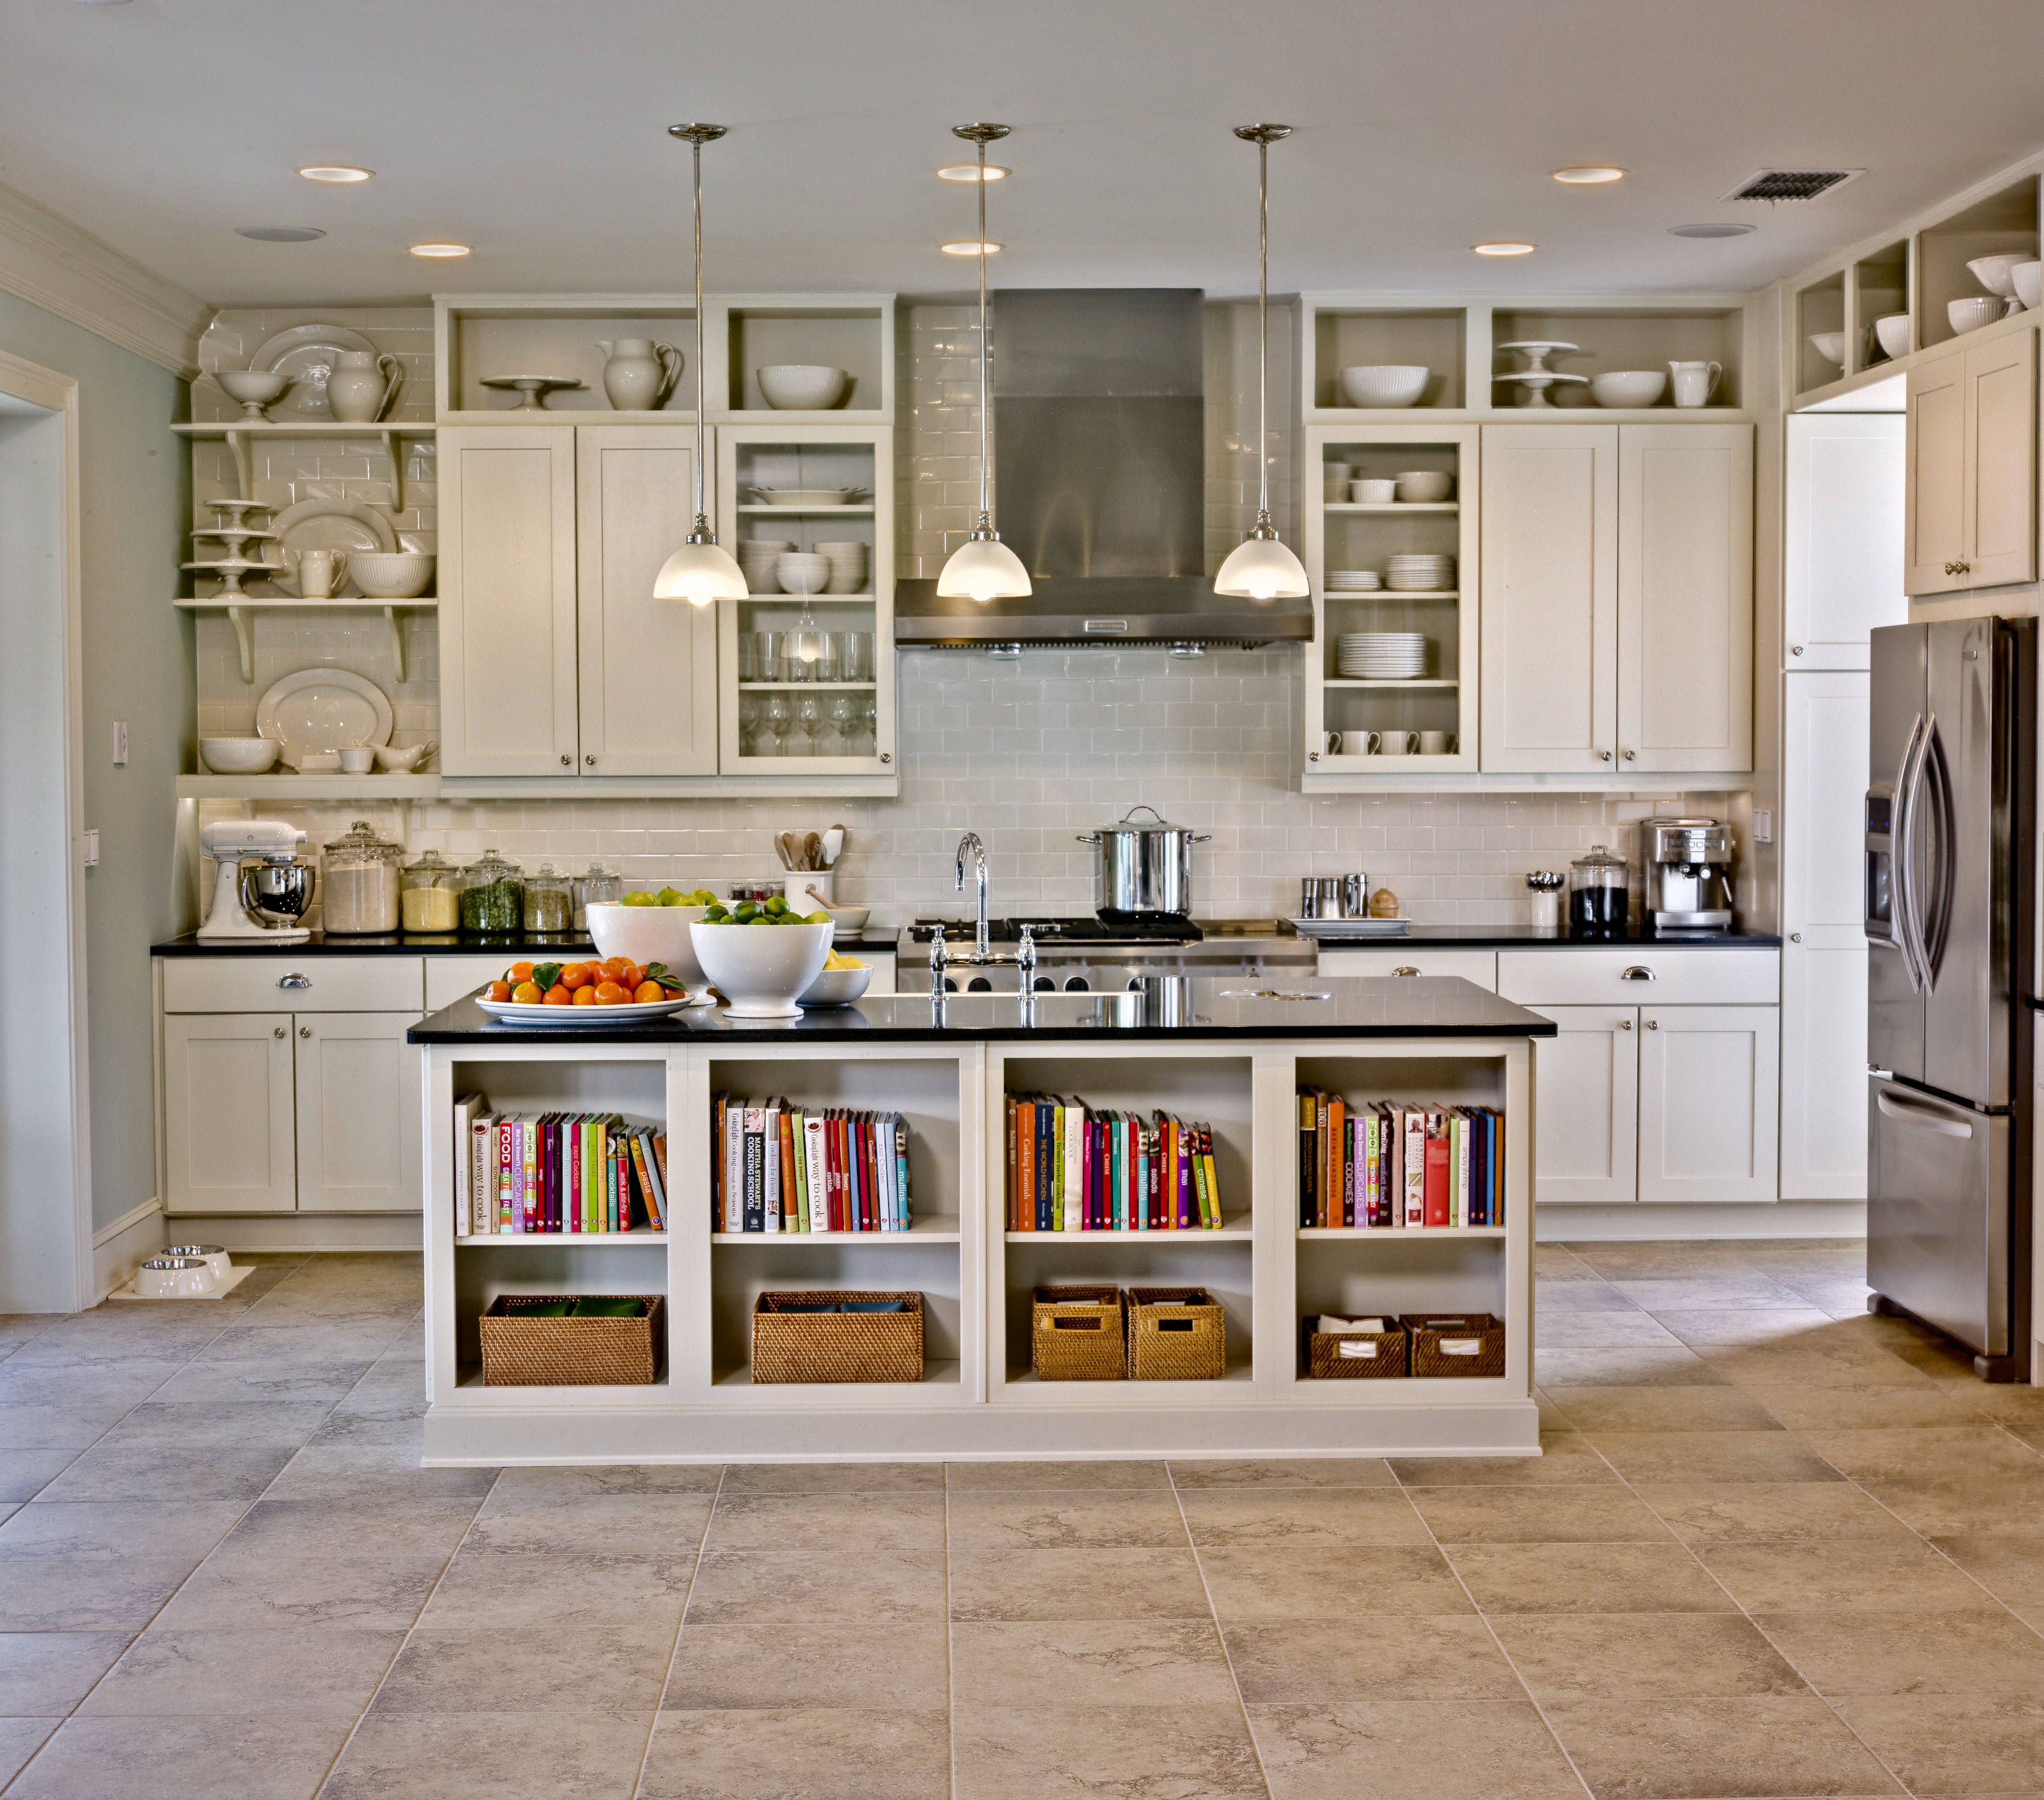 Kitchen cabinets storage solutions photo - 3